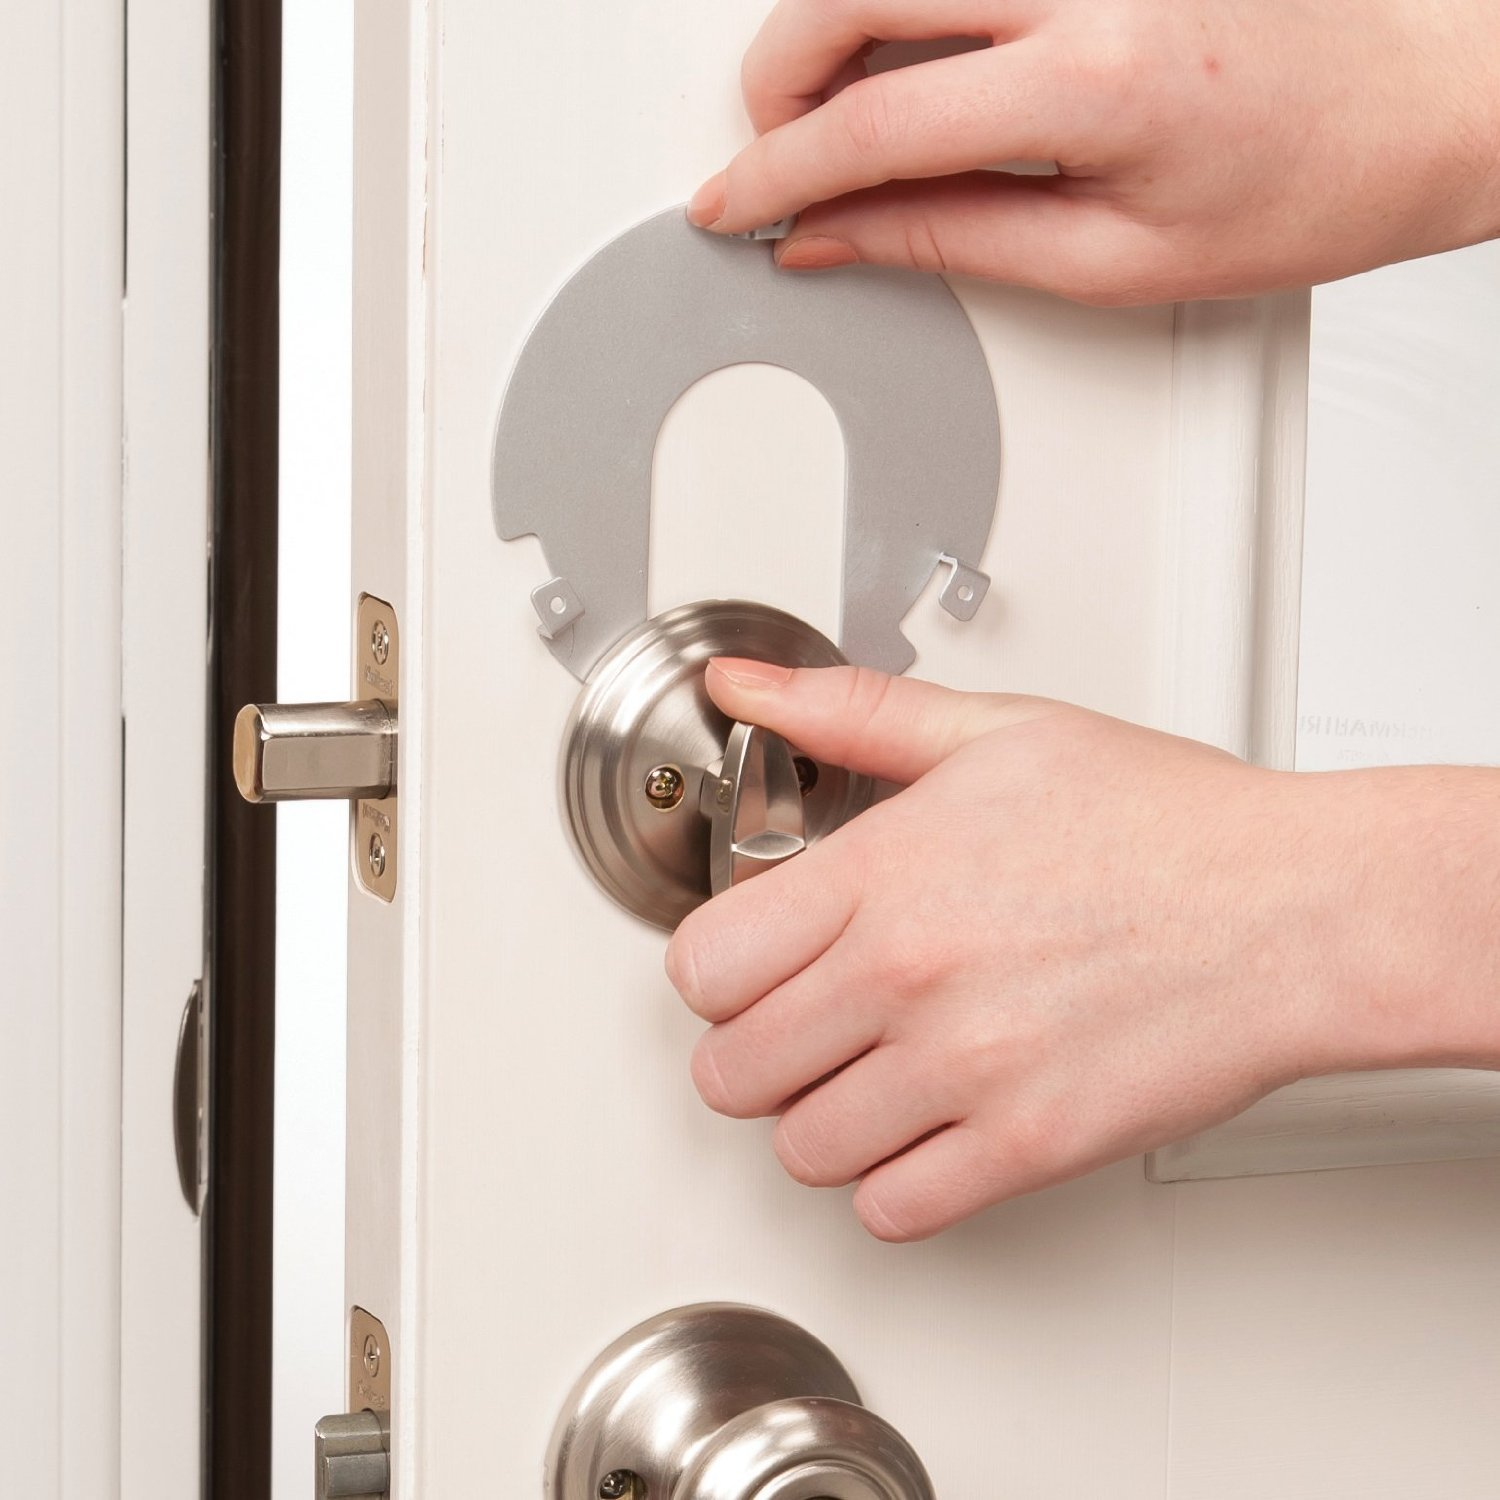 Safety 1st Secure Mount Deadbolt Lock - 2 Count by Safety 1st (Image #2)